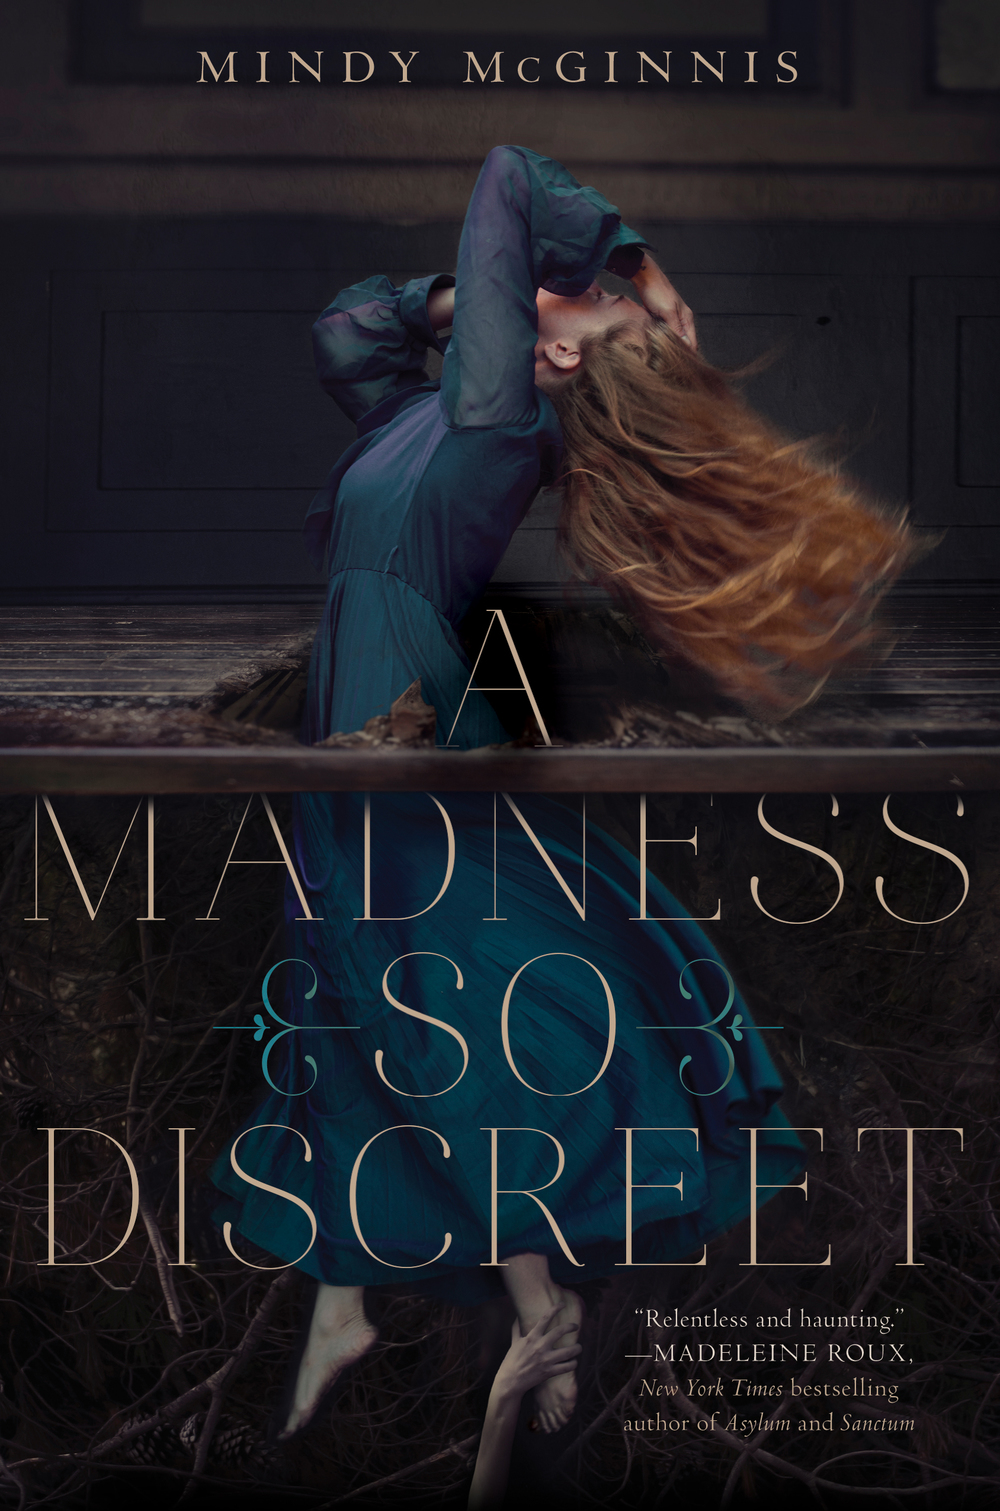 A Madness So Discreet, by Mindy McGinnis